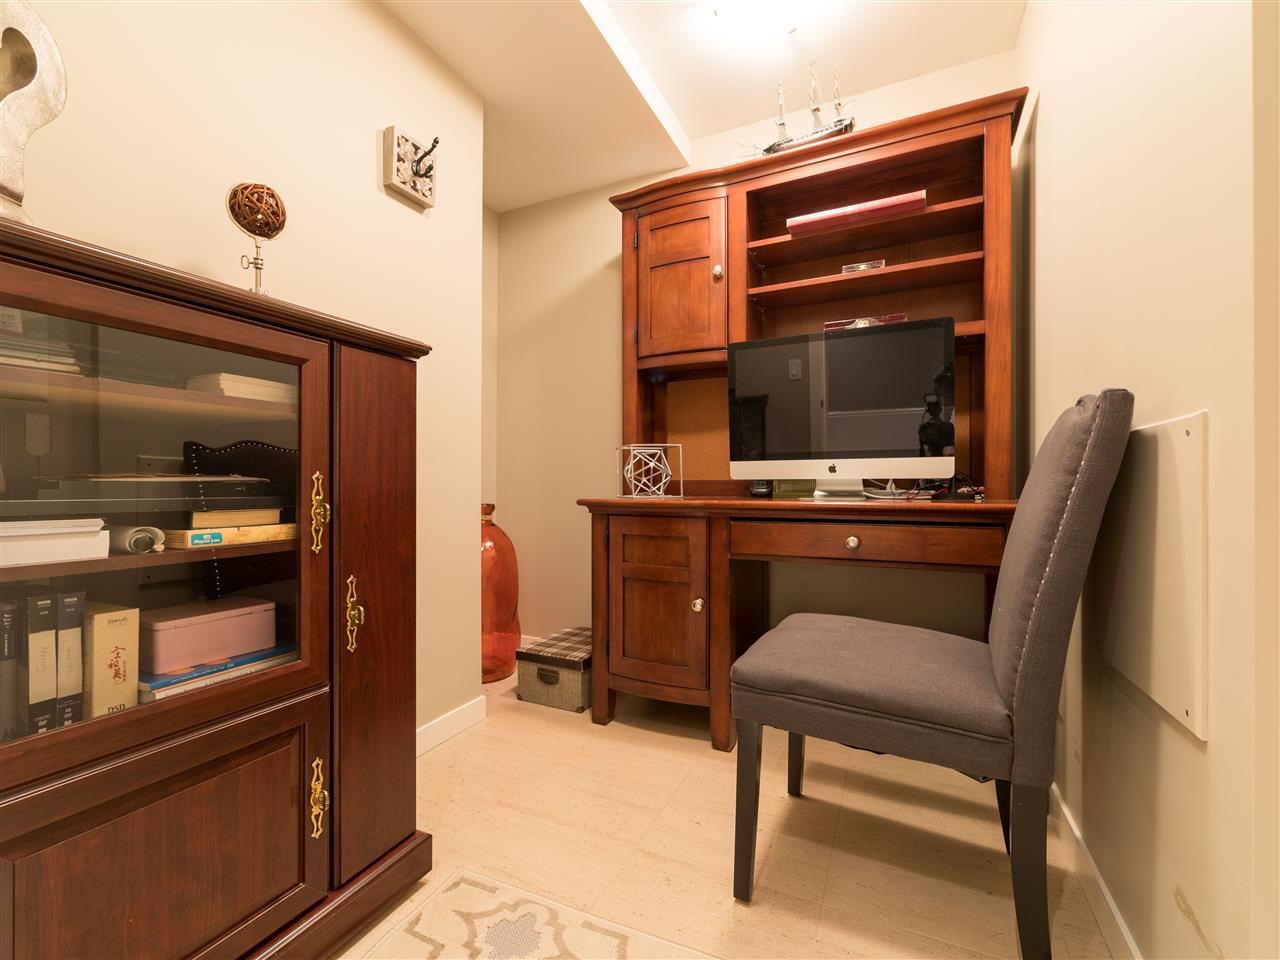 Condo Apartment at TH8 5991 WALTER GAGE ROAD, Unit TH8, Vancouver West, British Columbia. Image 15